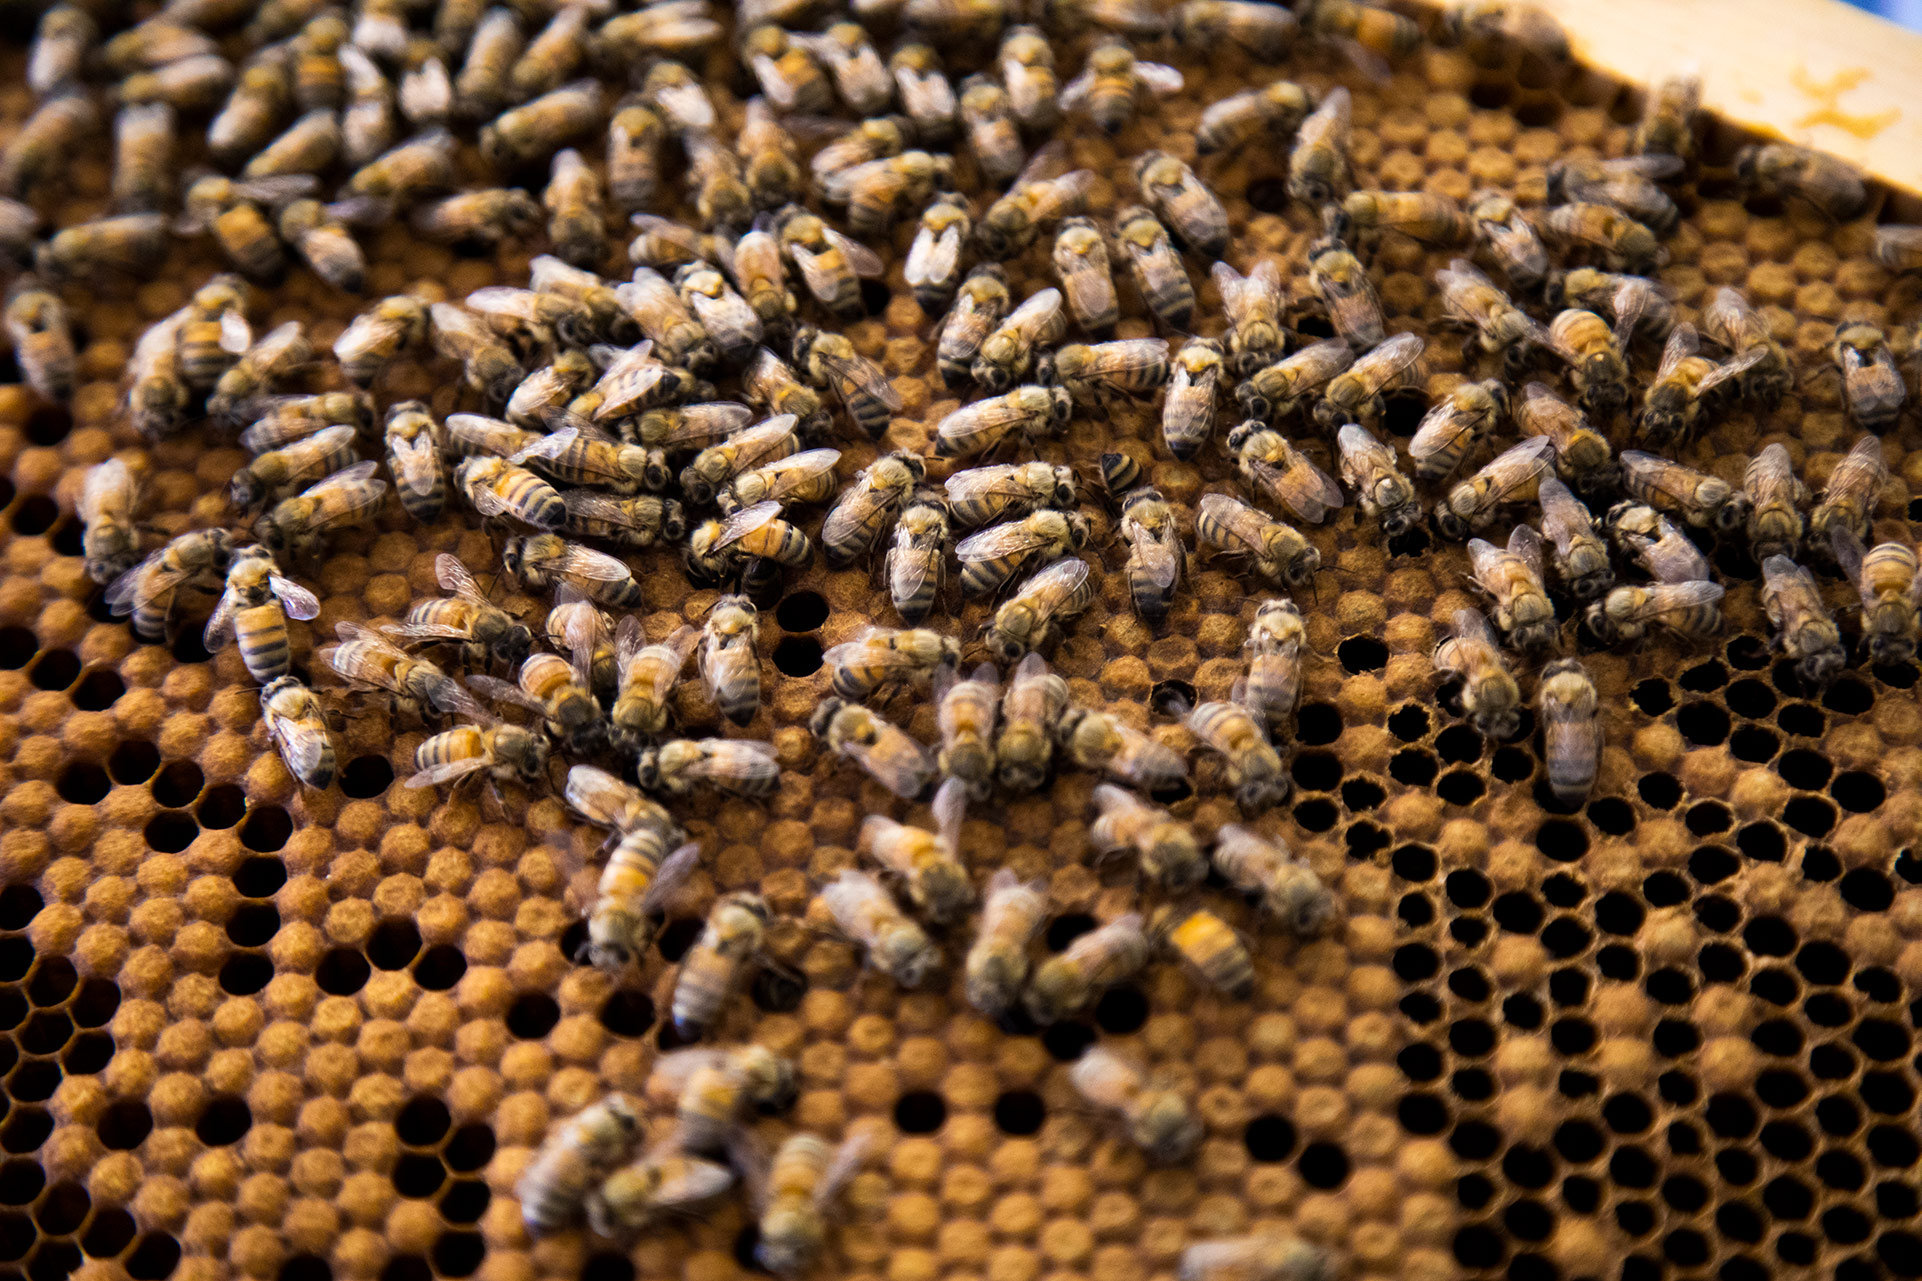 Bees on their honeycomb